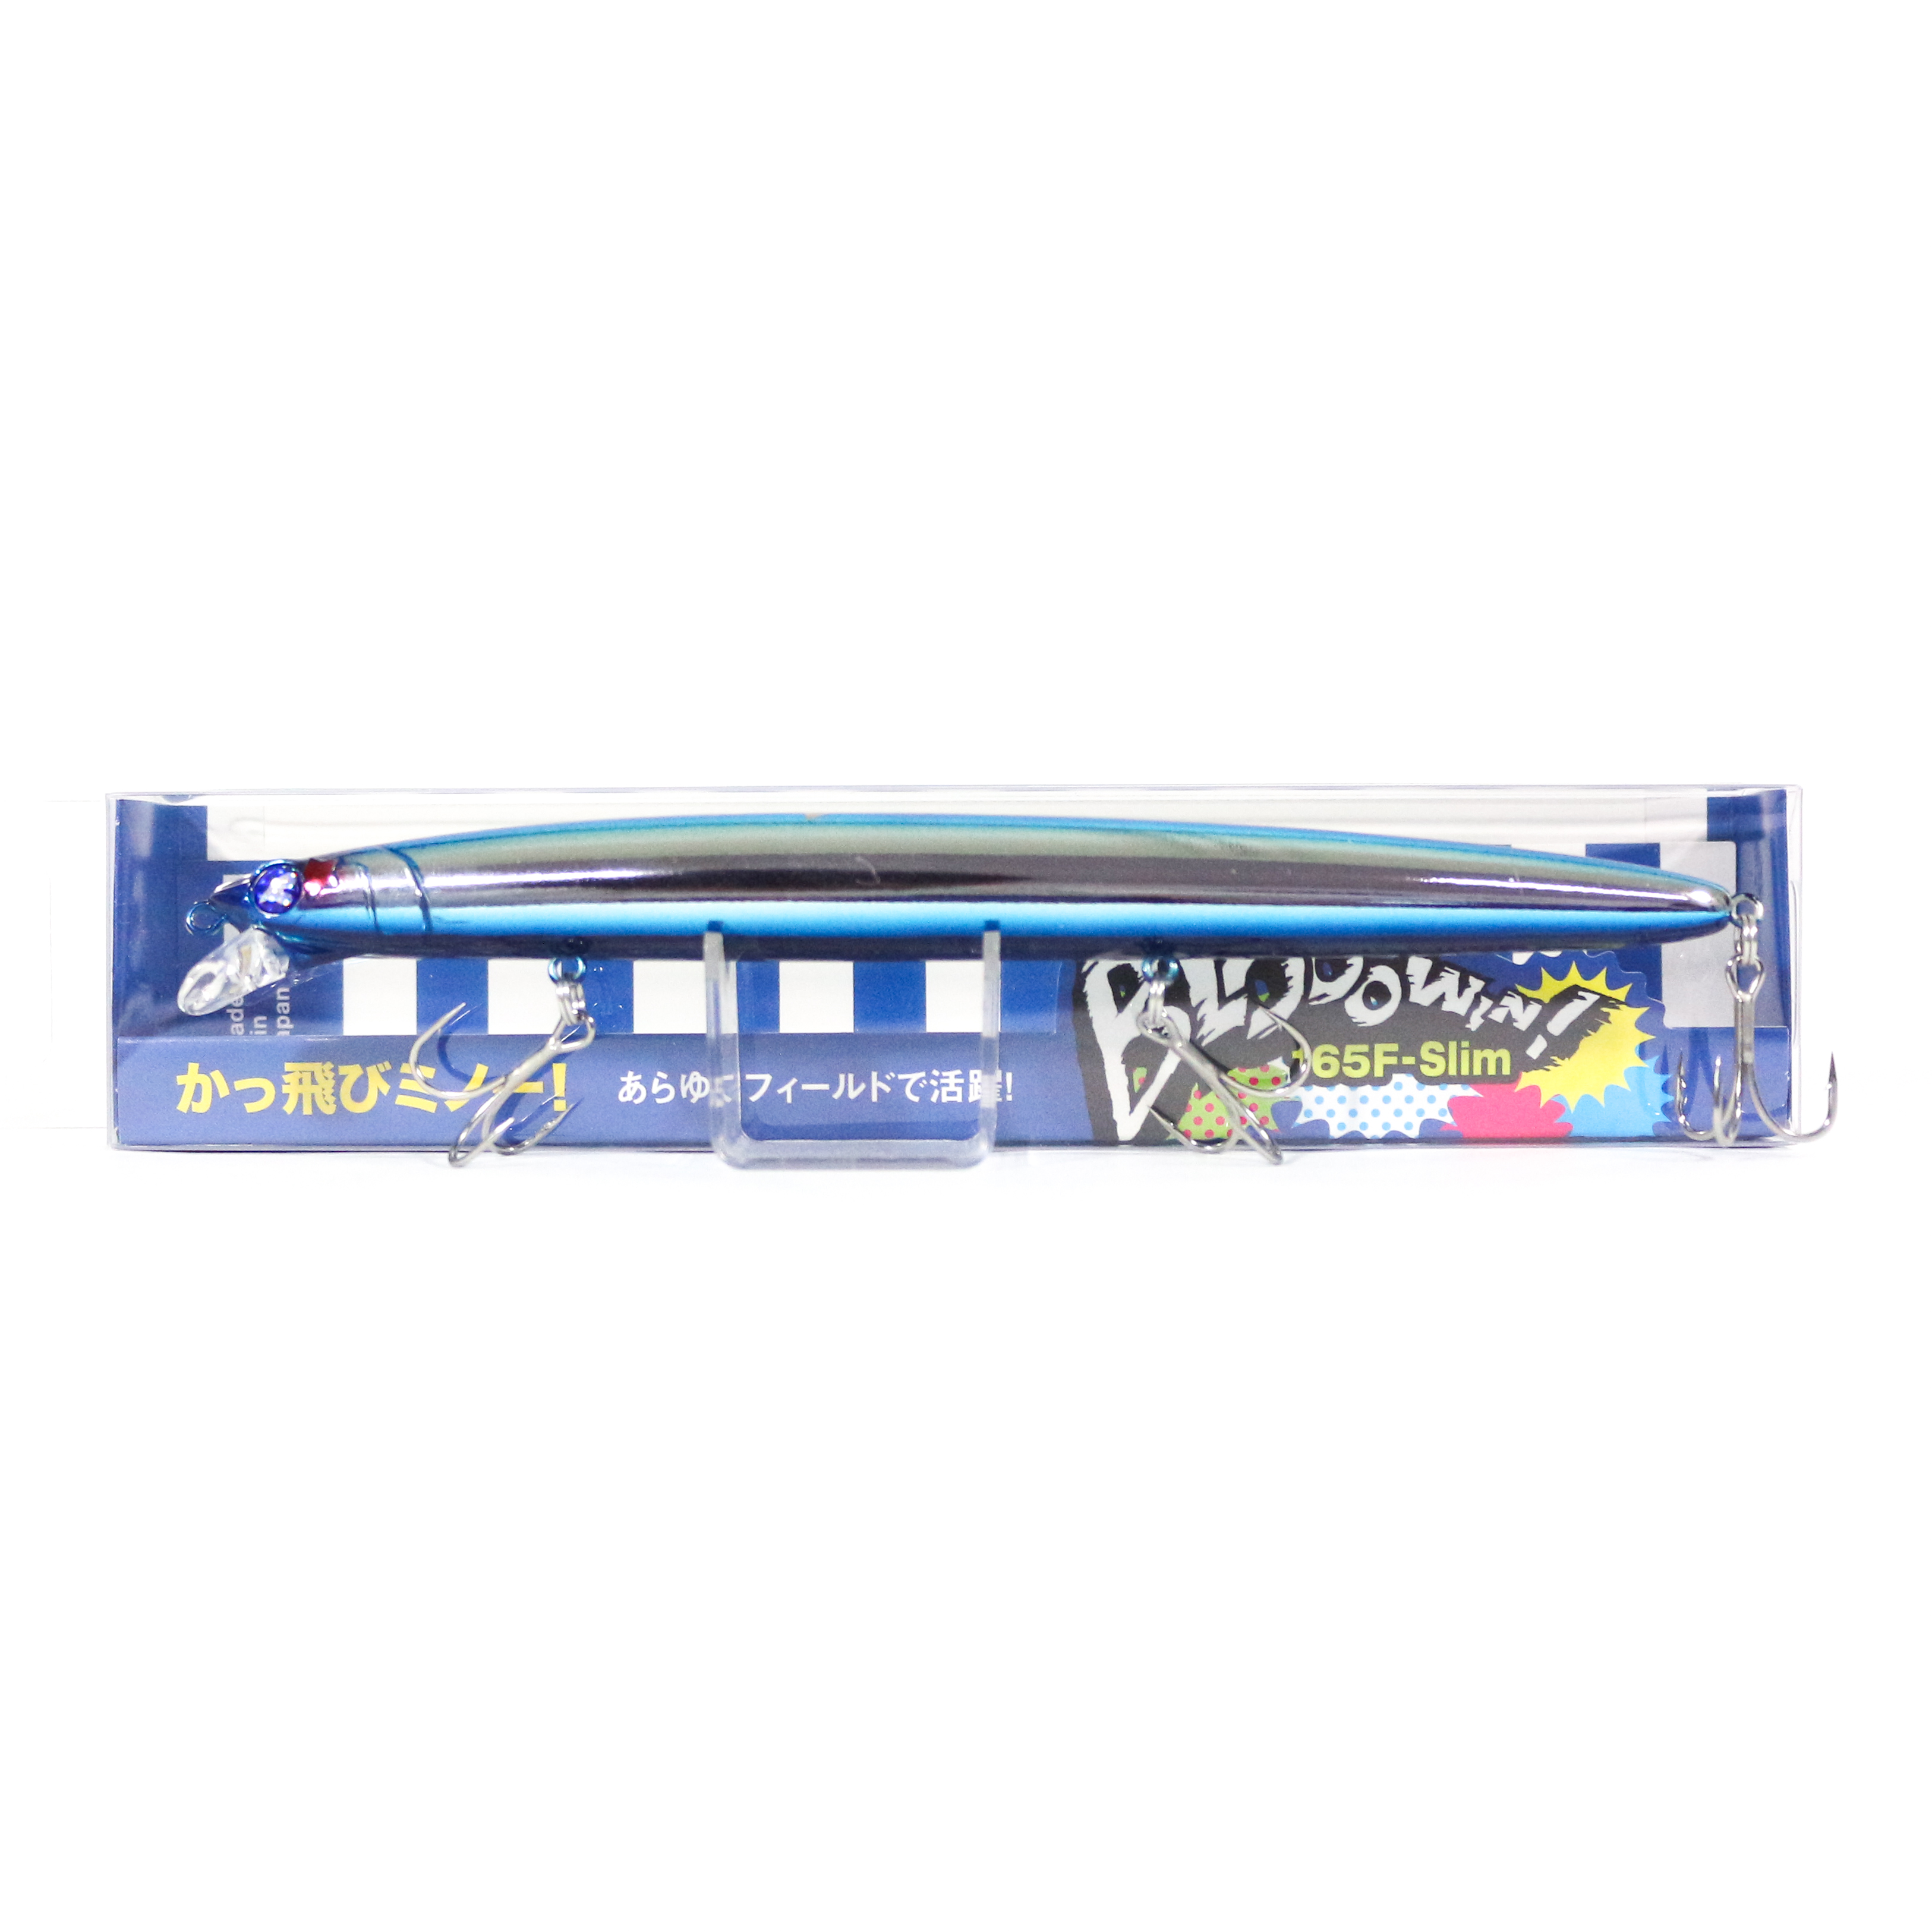 Blue Blue Blooowin 165F 24 grams Floating Lure 01 (5757)